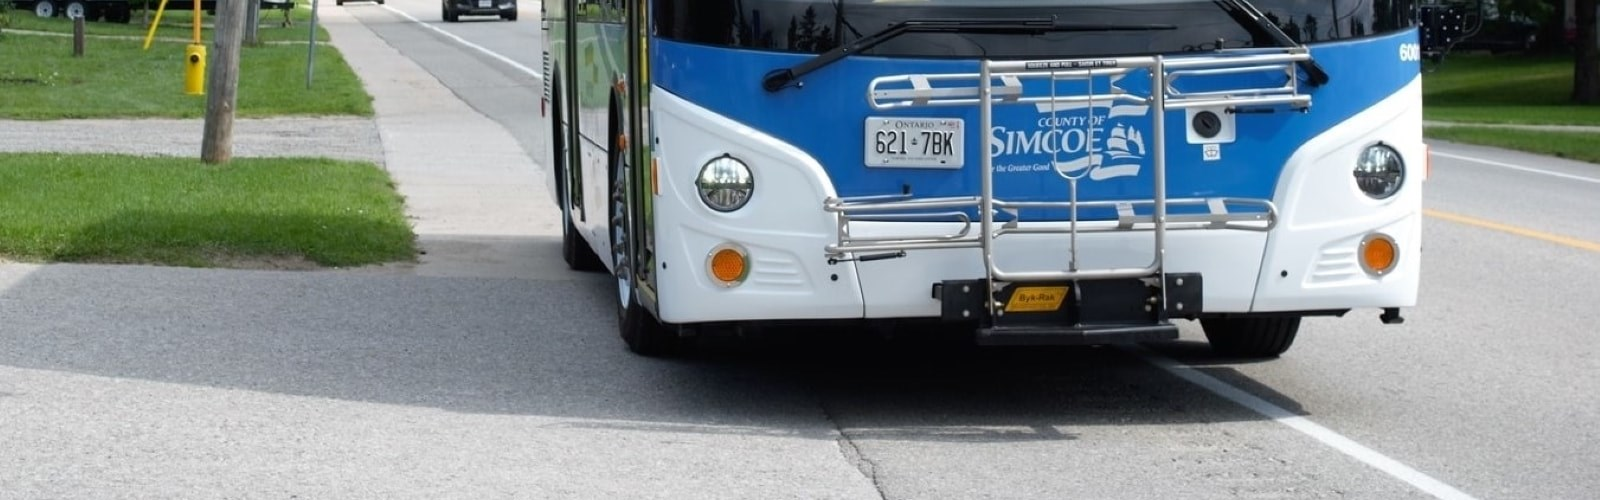 Bus with LINX logo